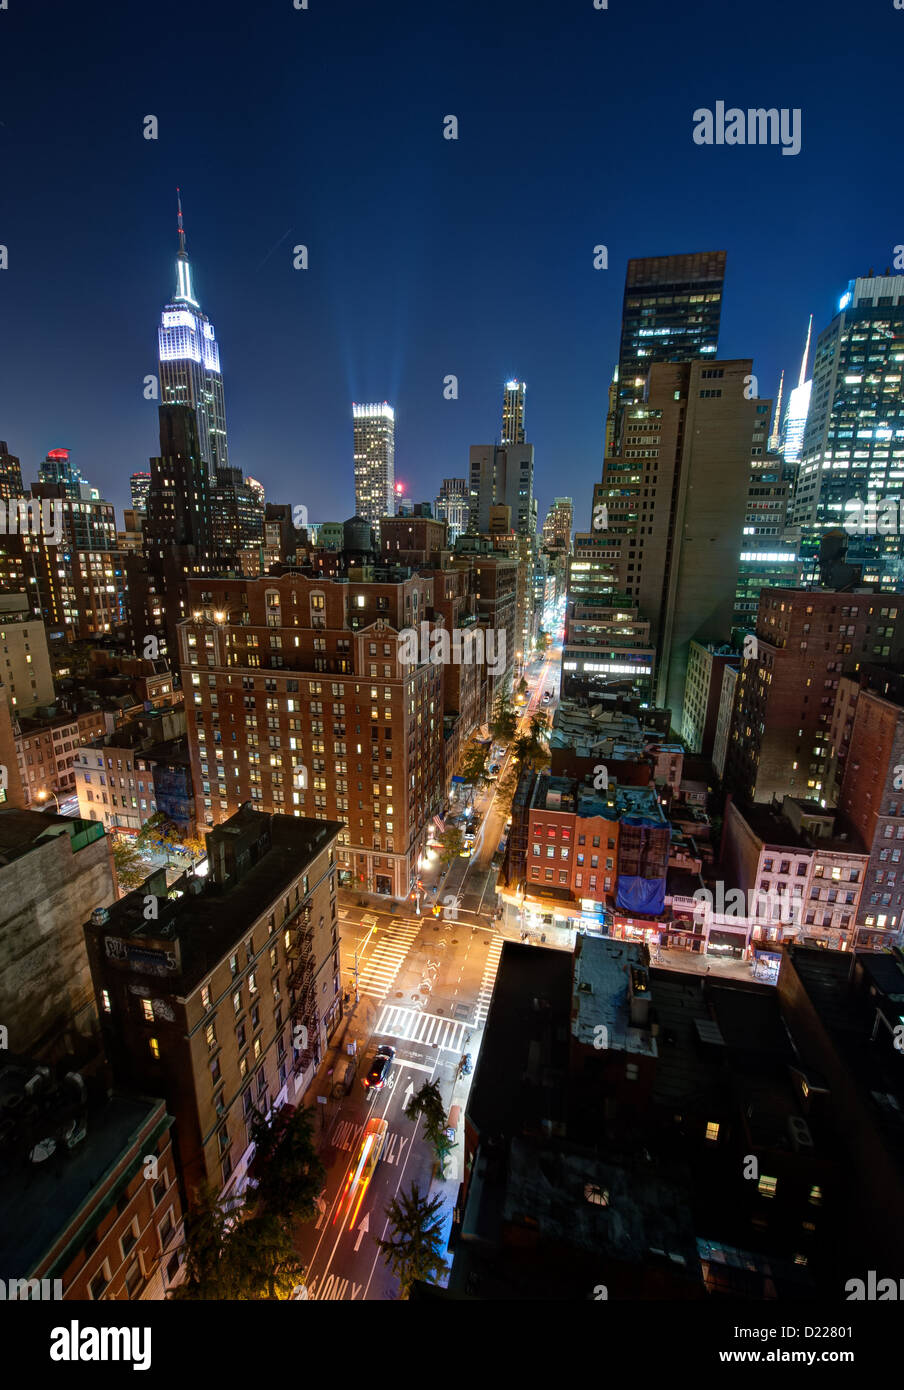 The skyline of midtown Manhattan seen at night. - Stock Image